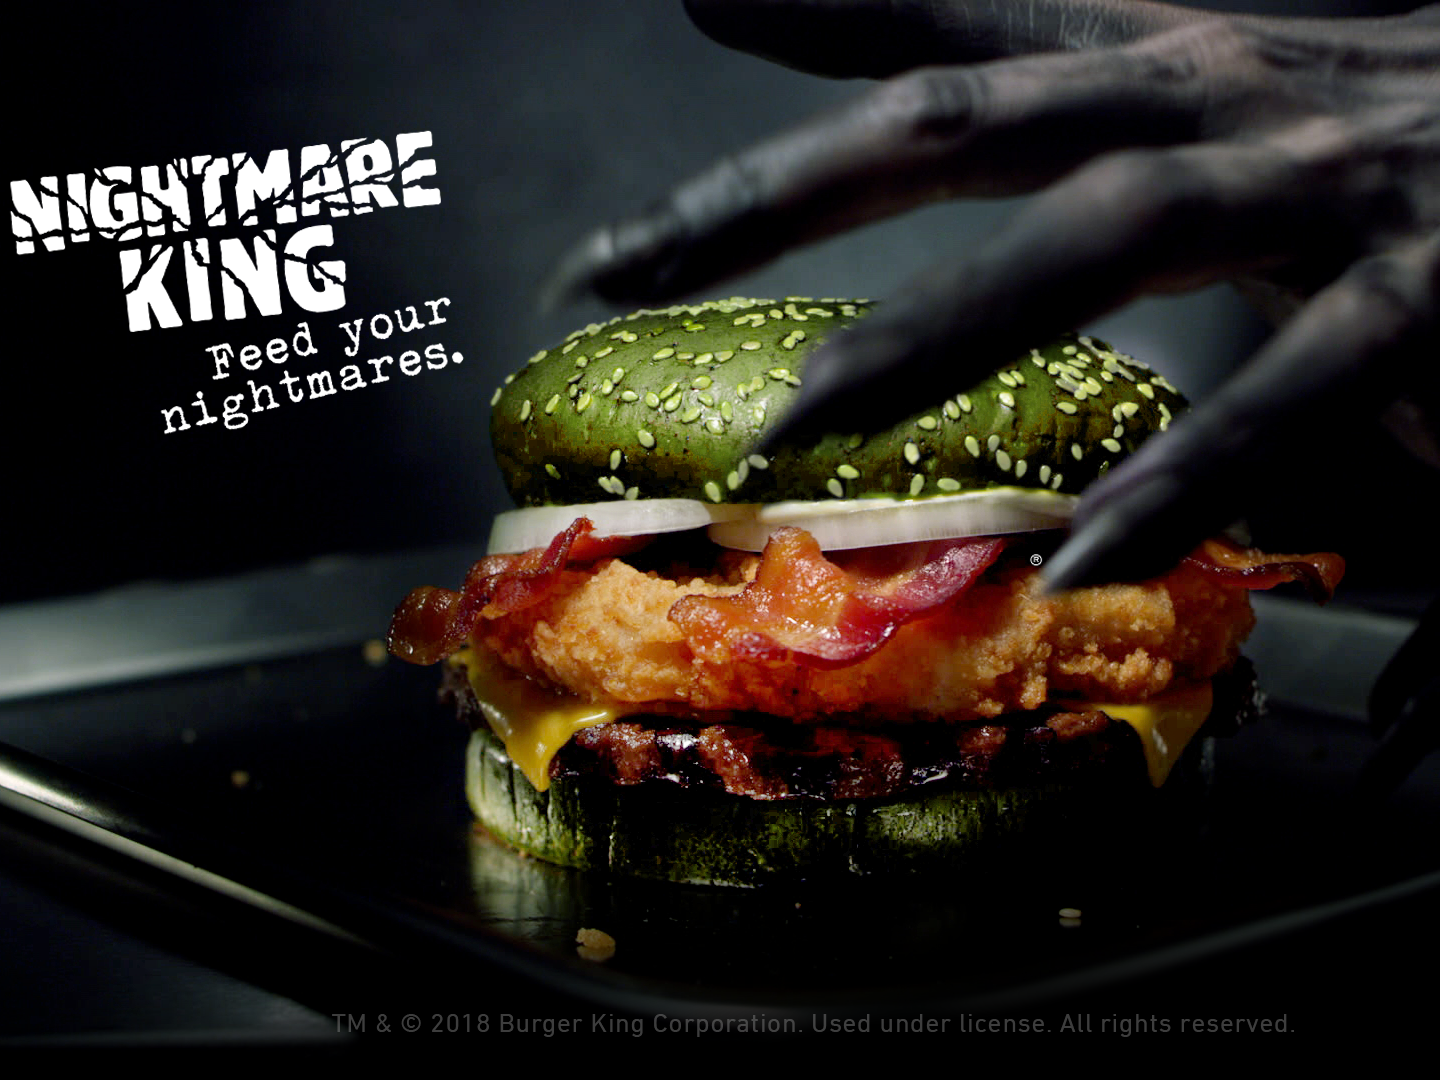 Burger King says its new Halloween creation 'Nightmare King' can induce nightmares